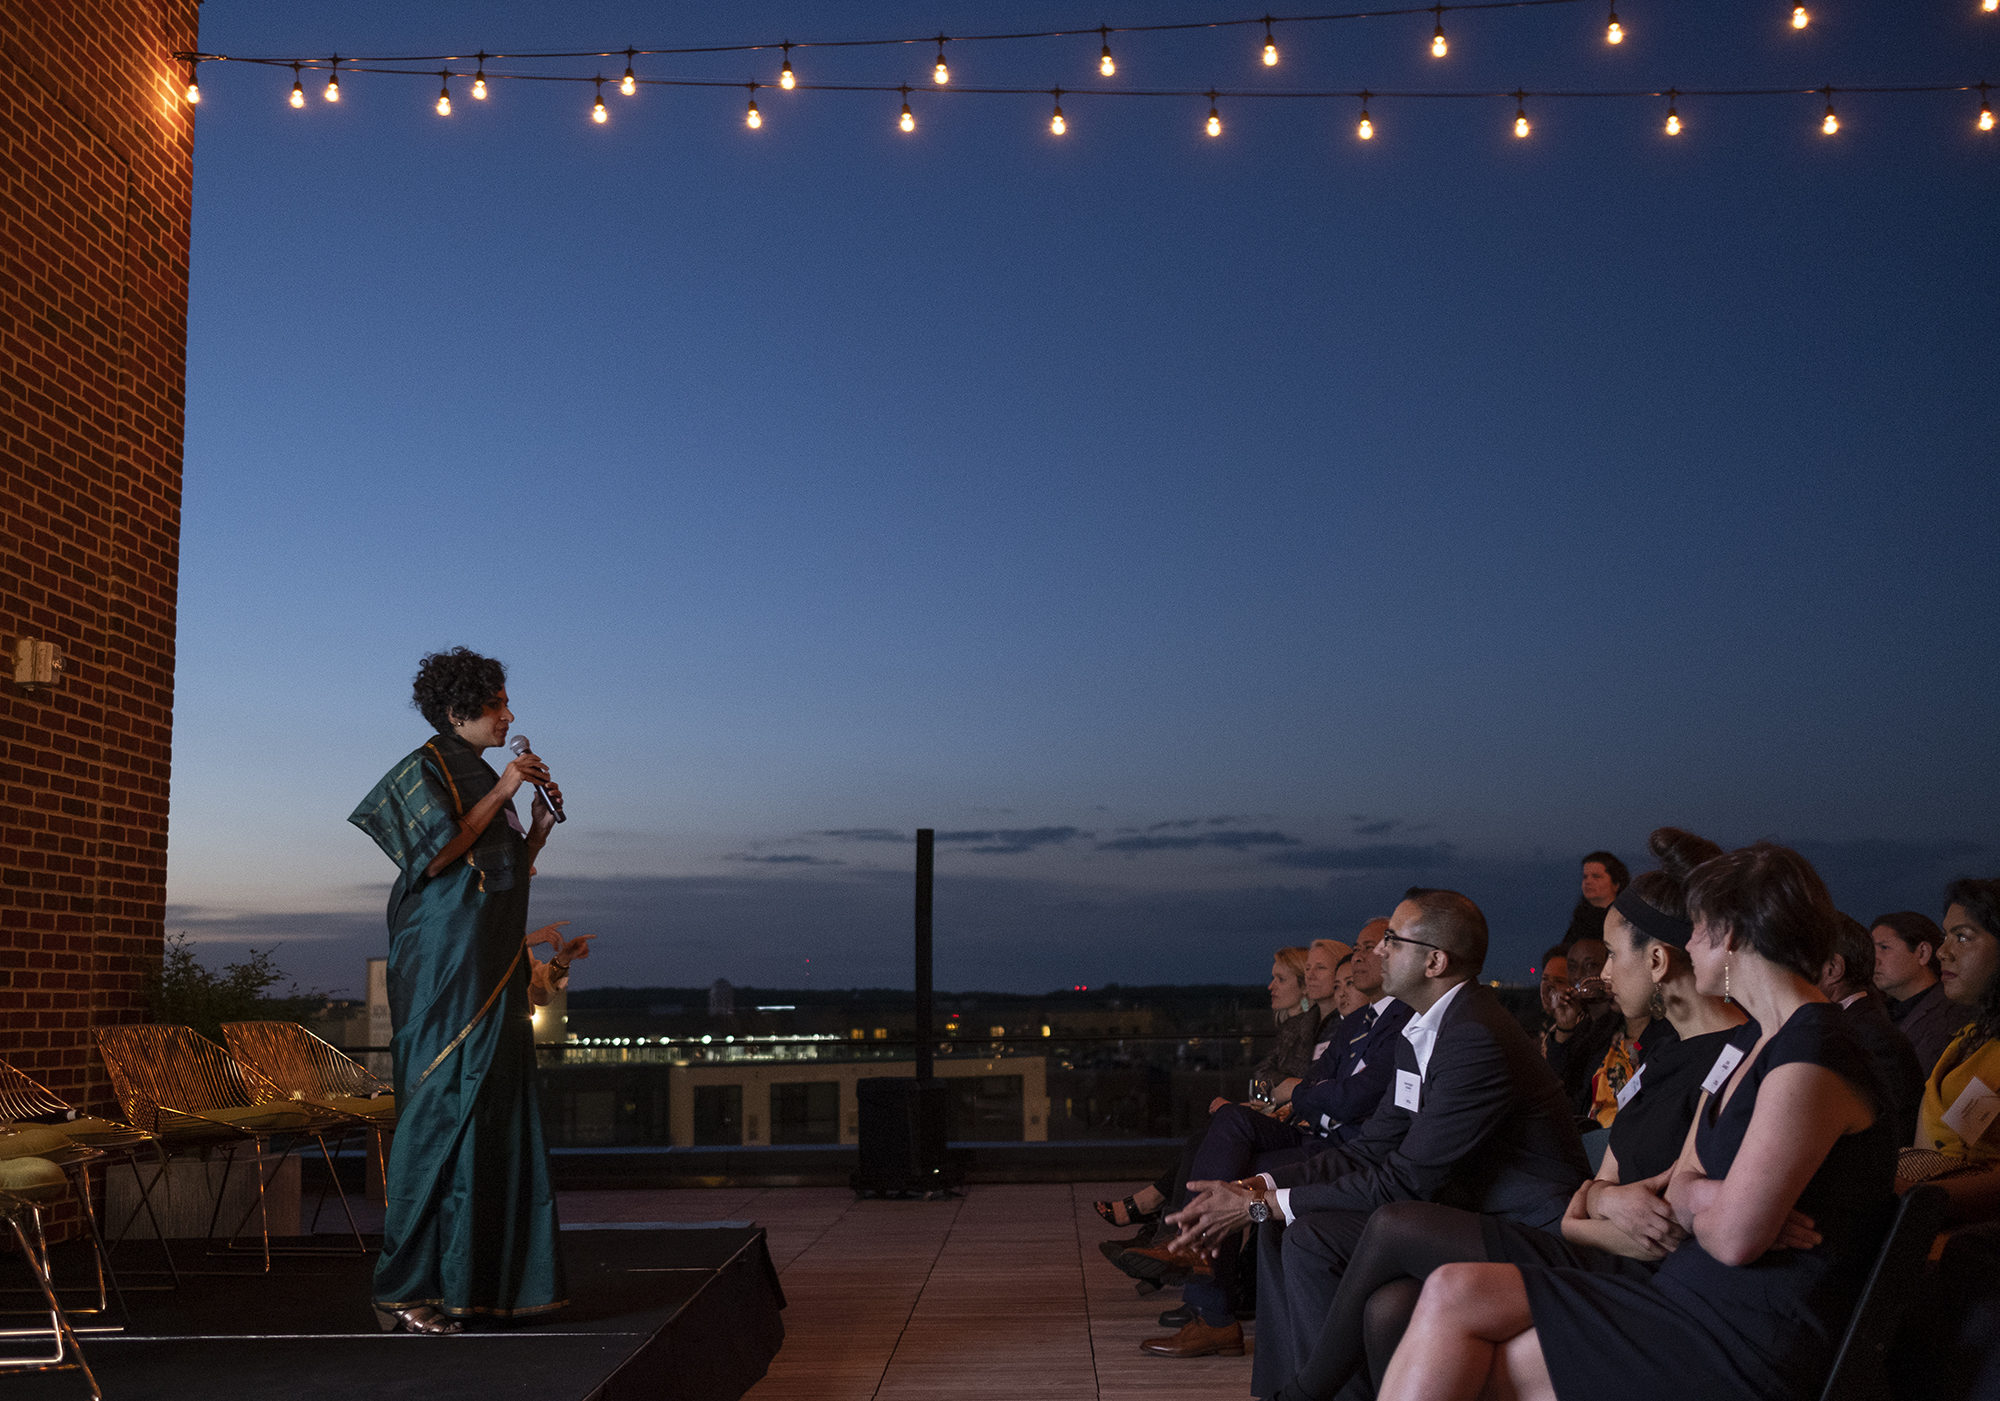 Obama Fellow Preethi Herman speaks to a group of people against a beautiful sunset.